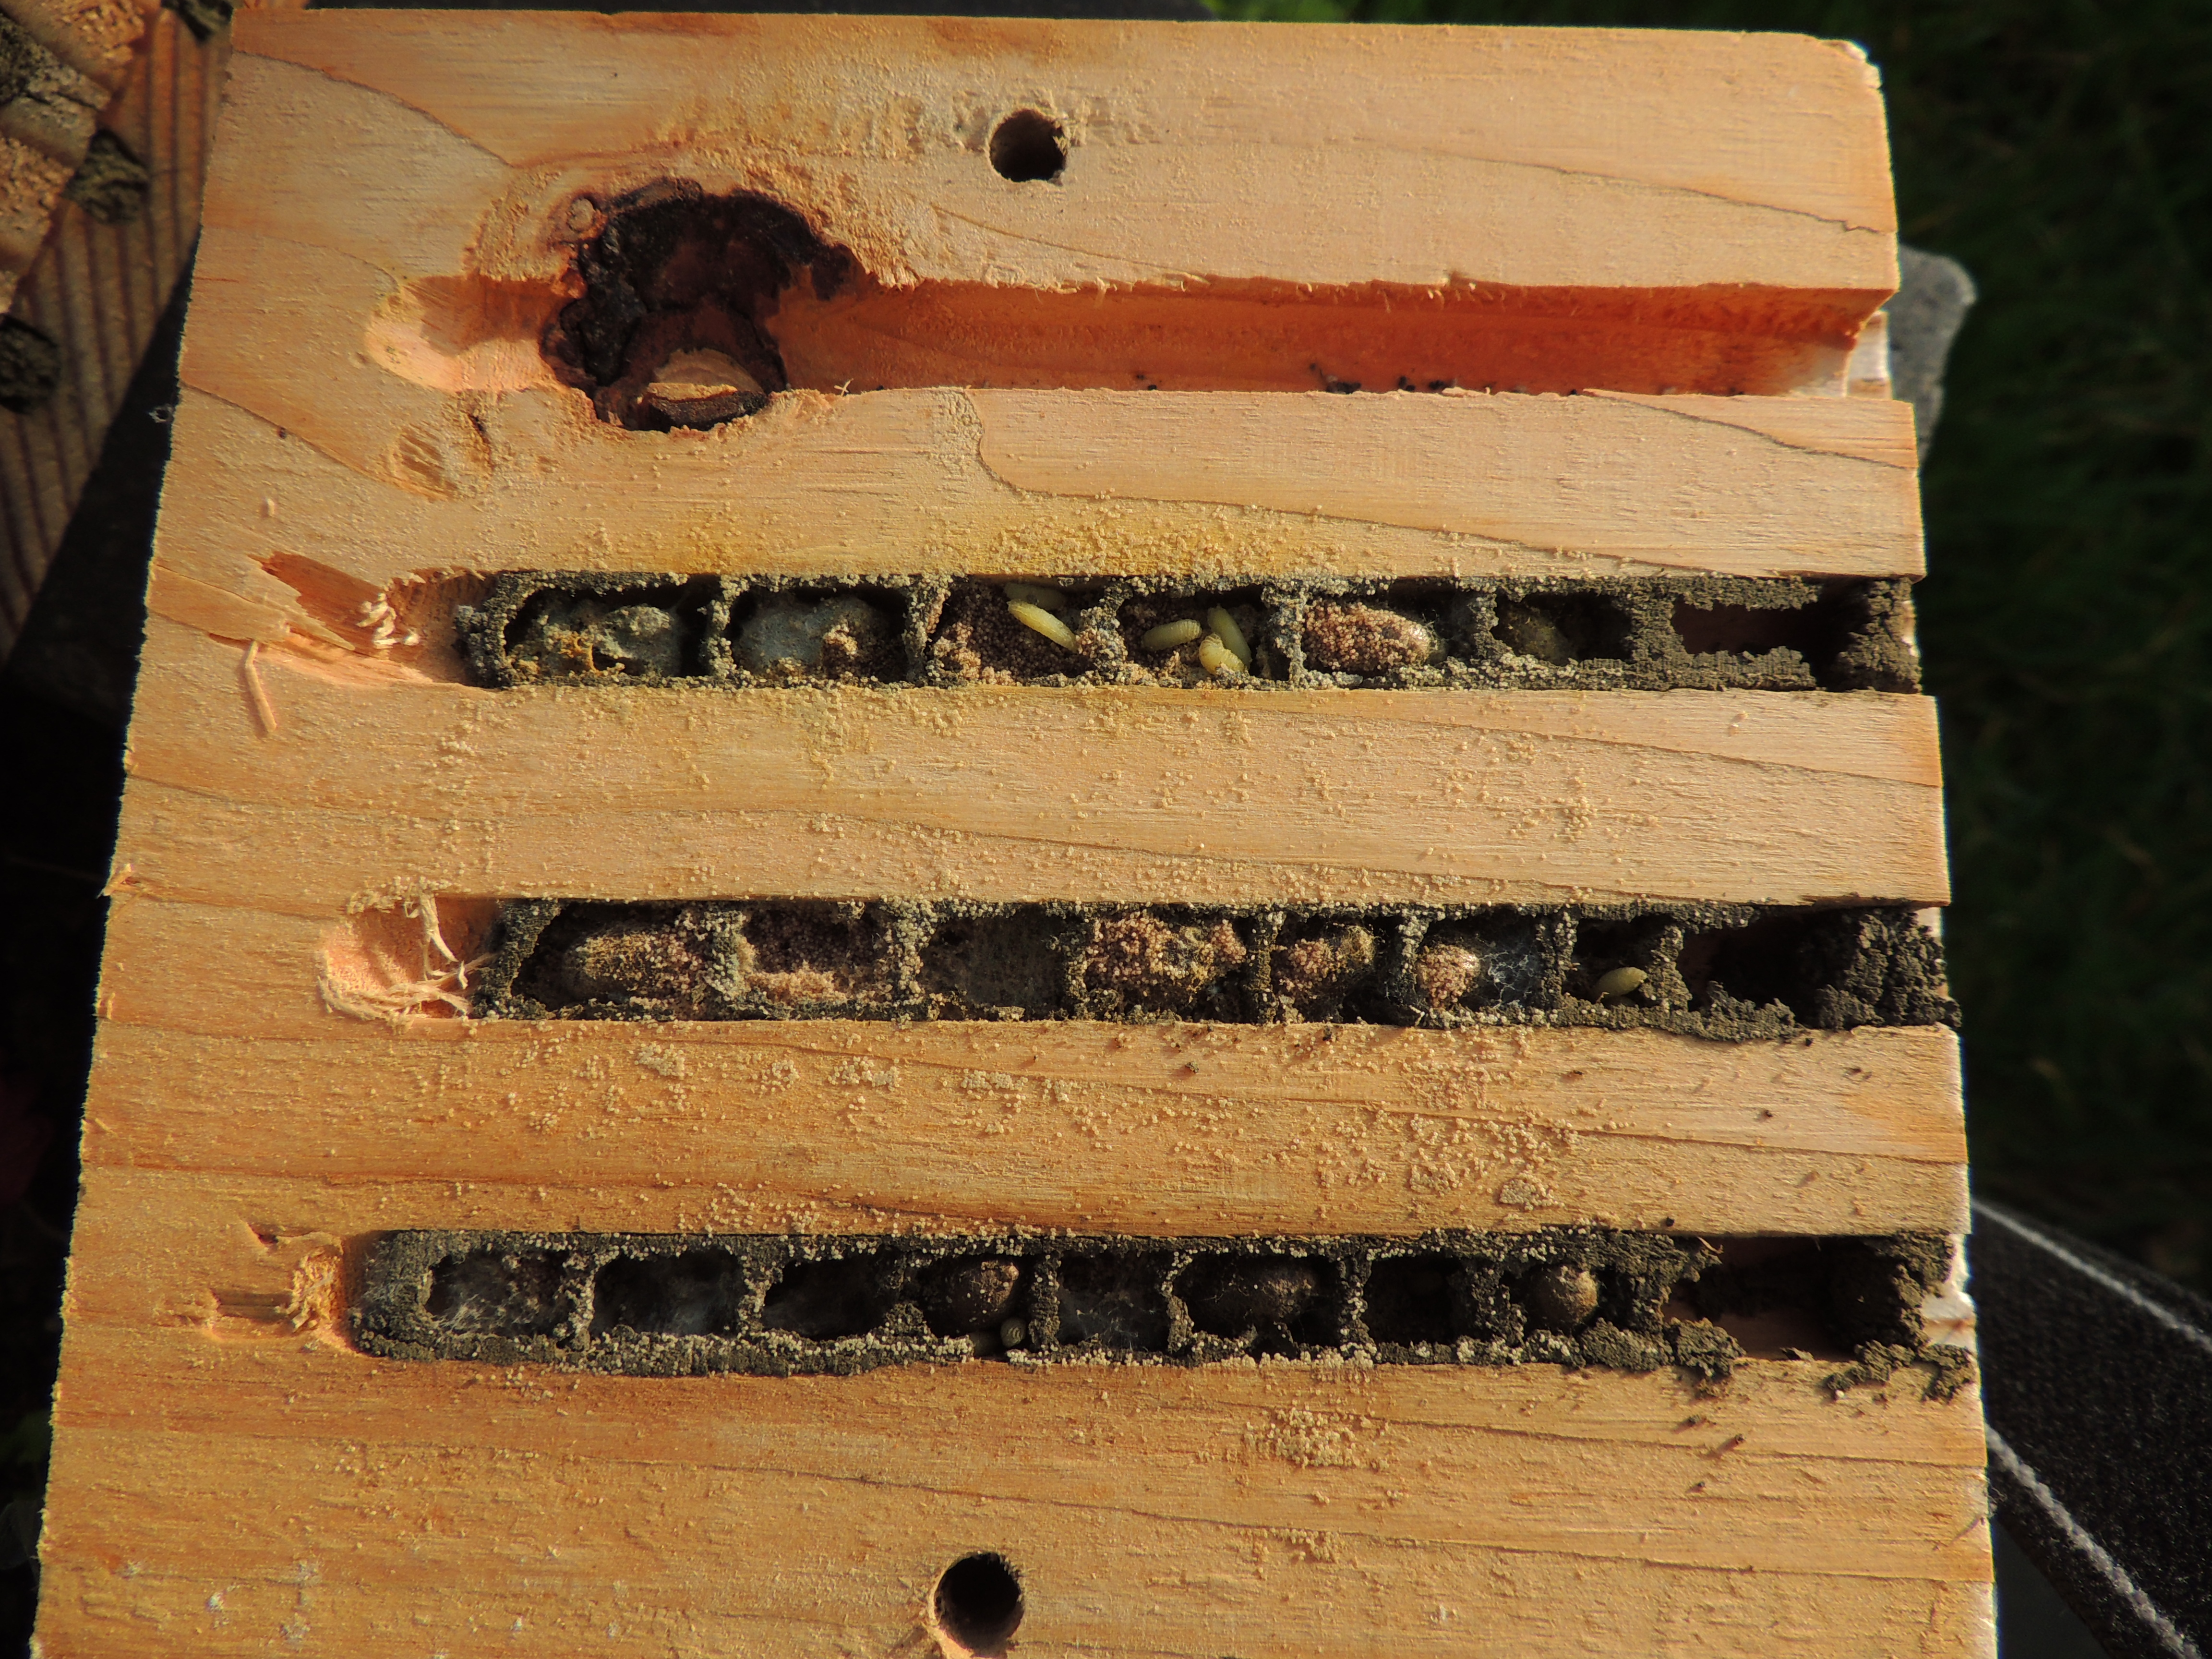 FileRed Mason Bee Osmia Bicornis Nest Cells In A Bee